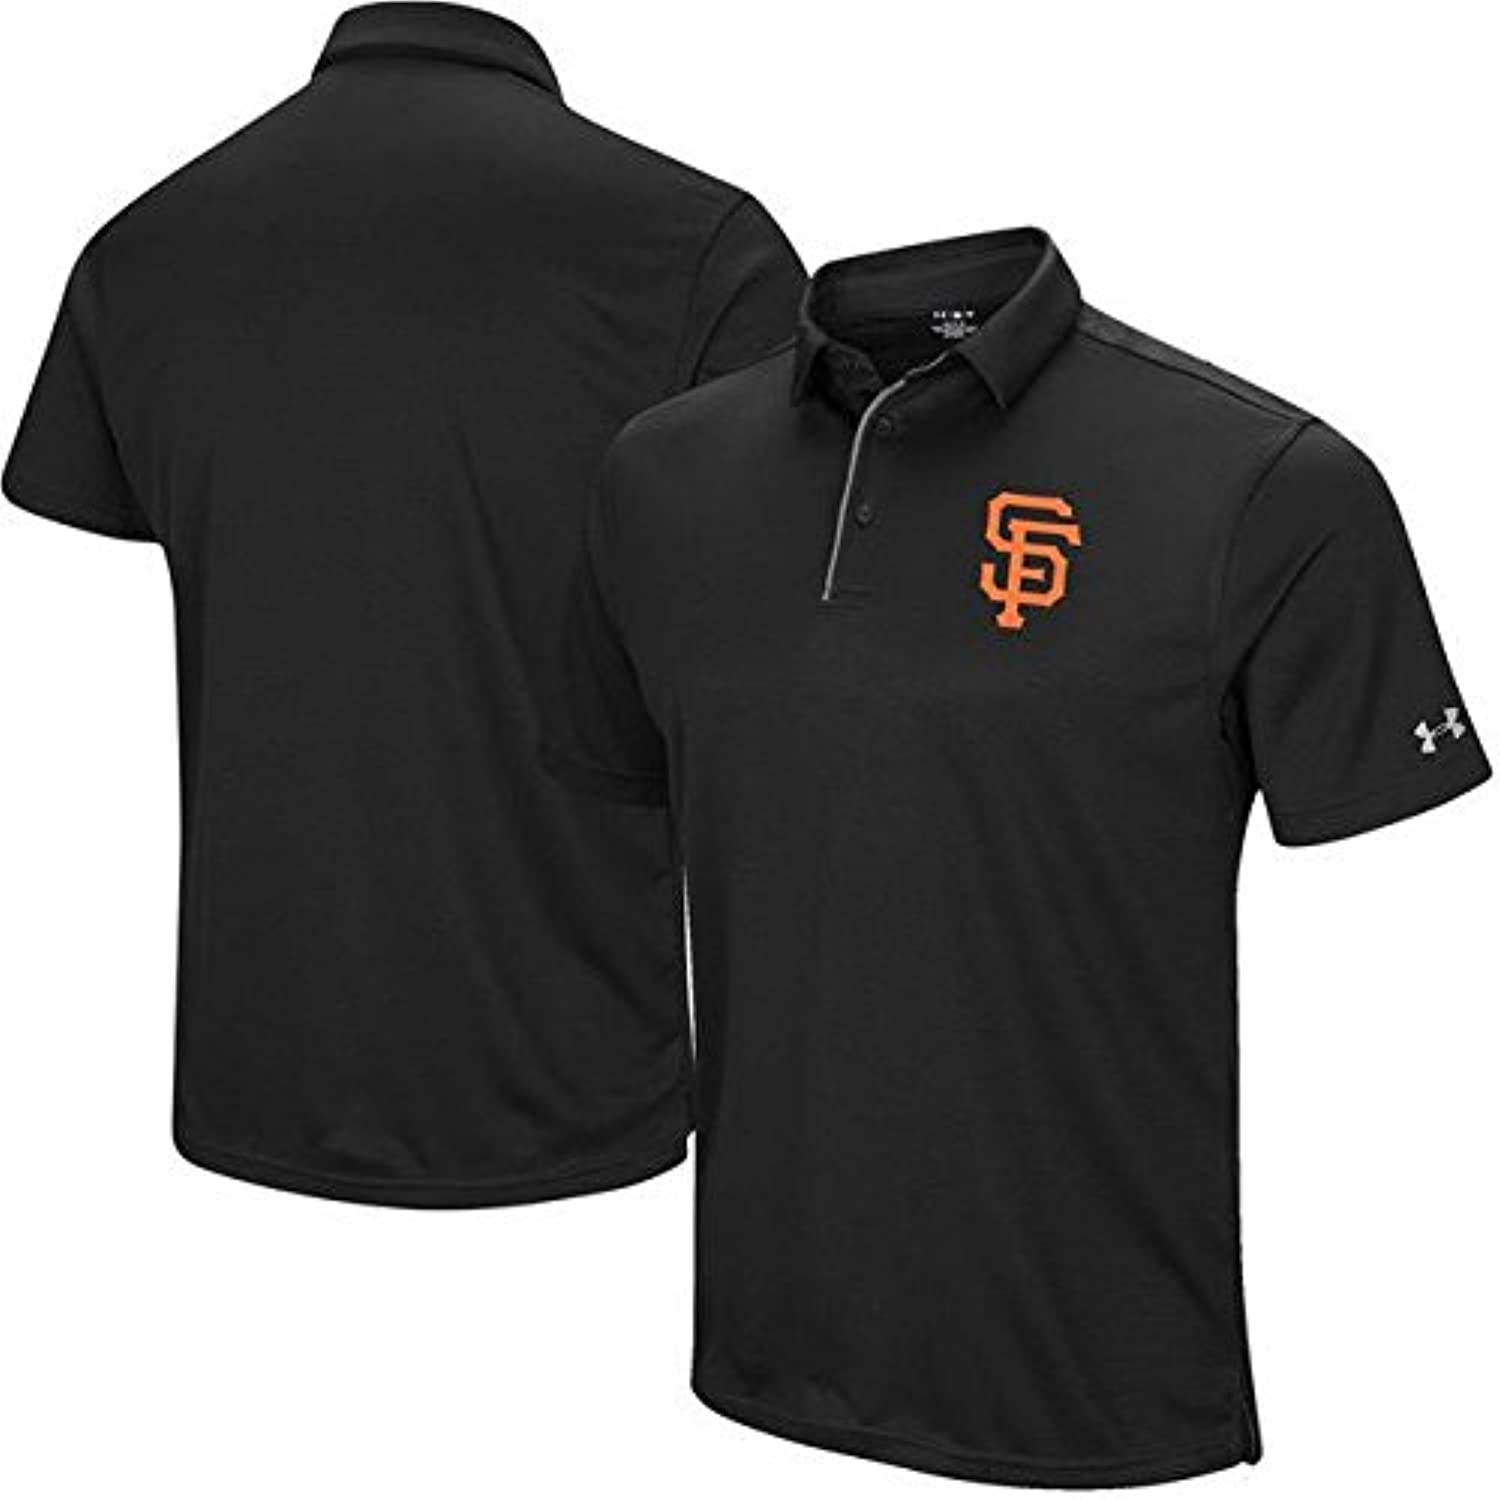 Under Armour Under Armour San Francisco Giants Black Left Chest Performance Polo シャツ ポロシャツ 【並行輸入品】